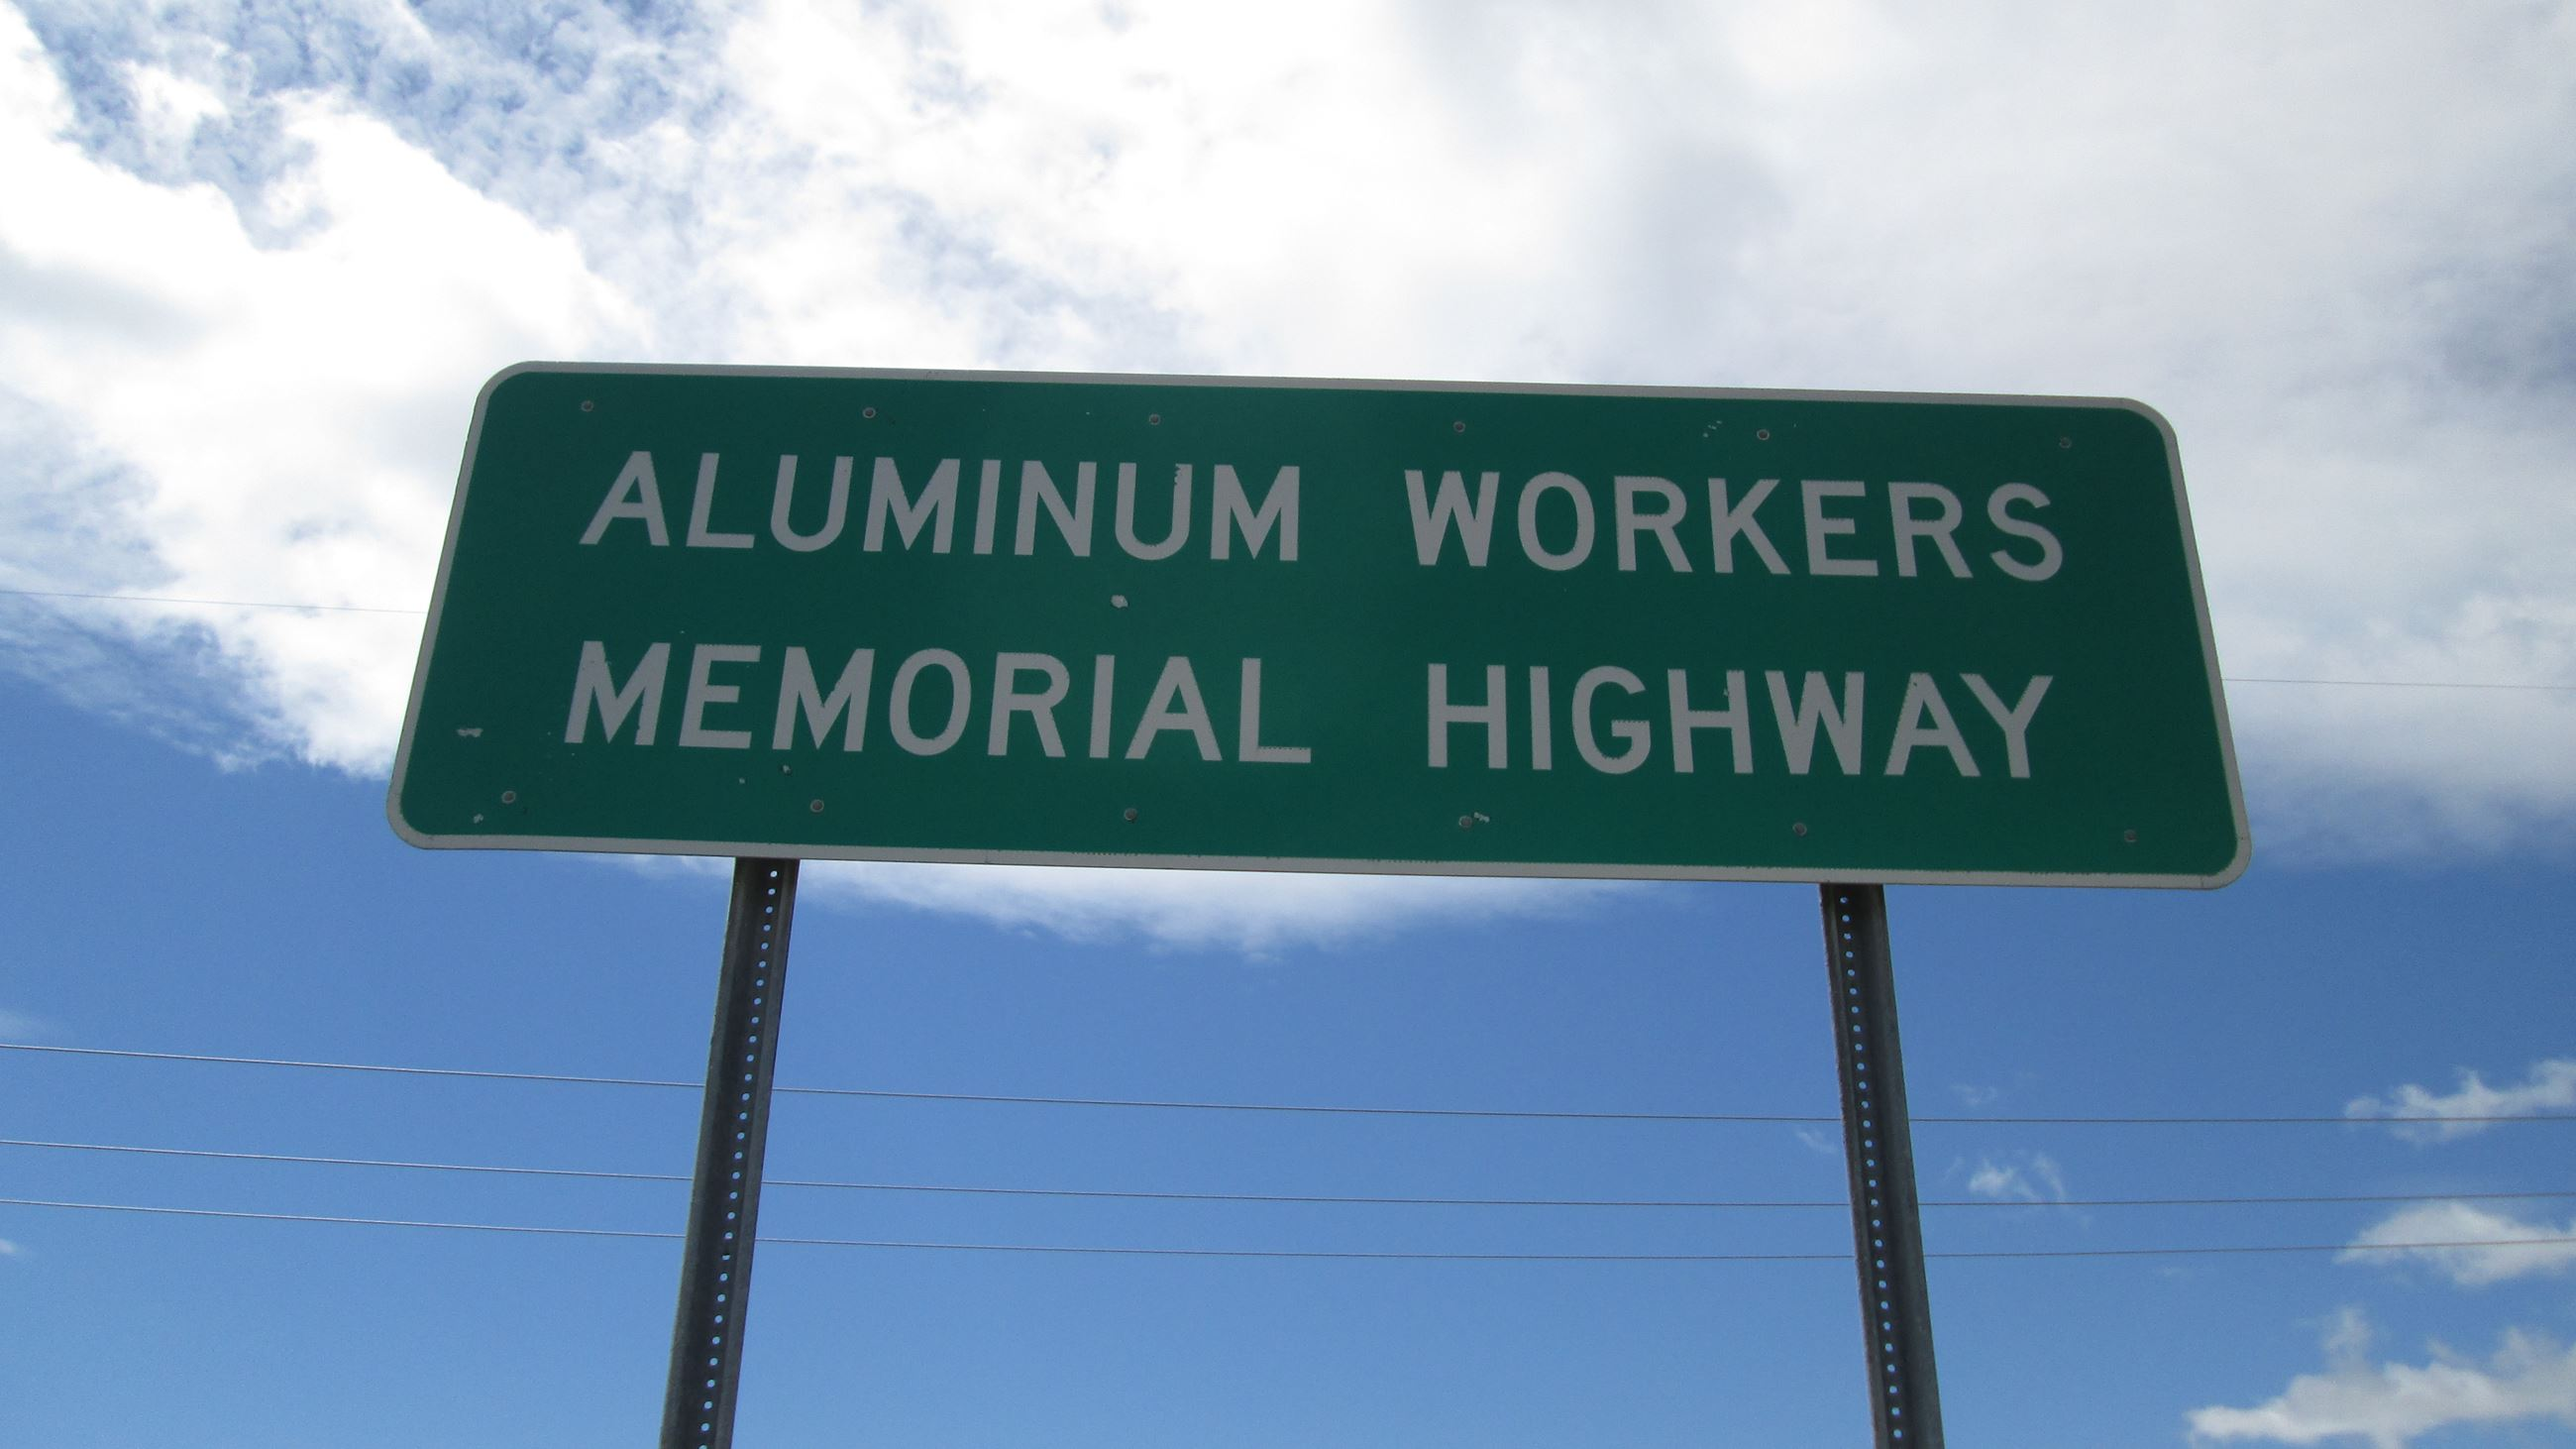 Aluminum Workers Memorial Highway NYS Route 37